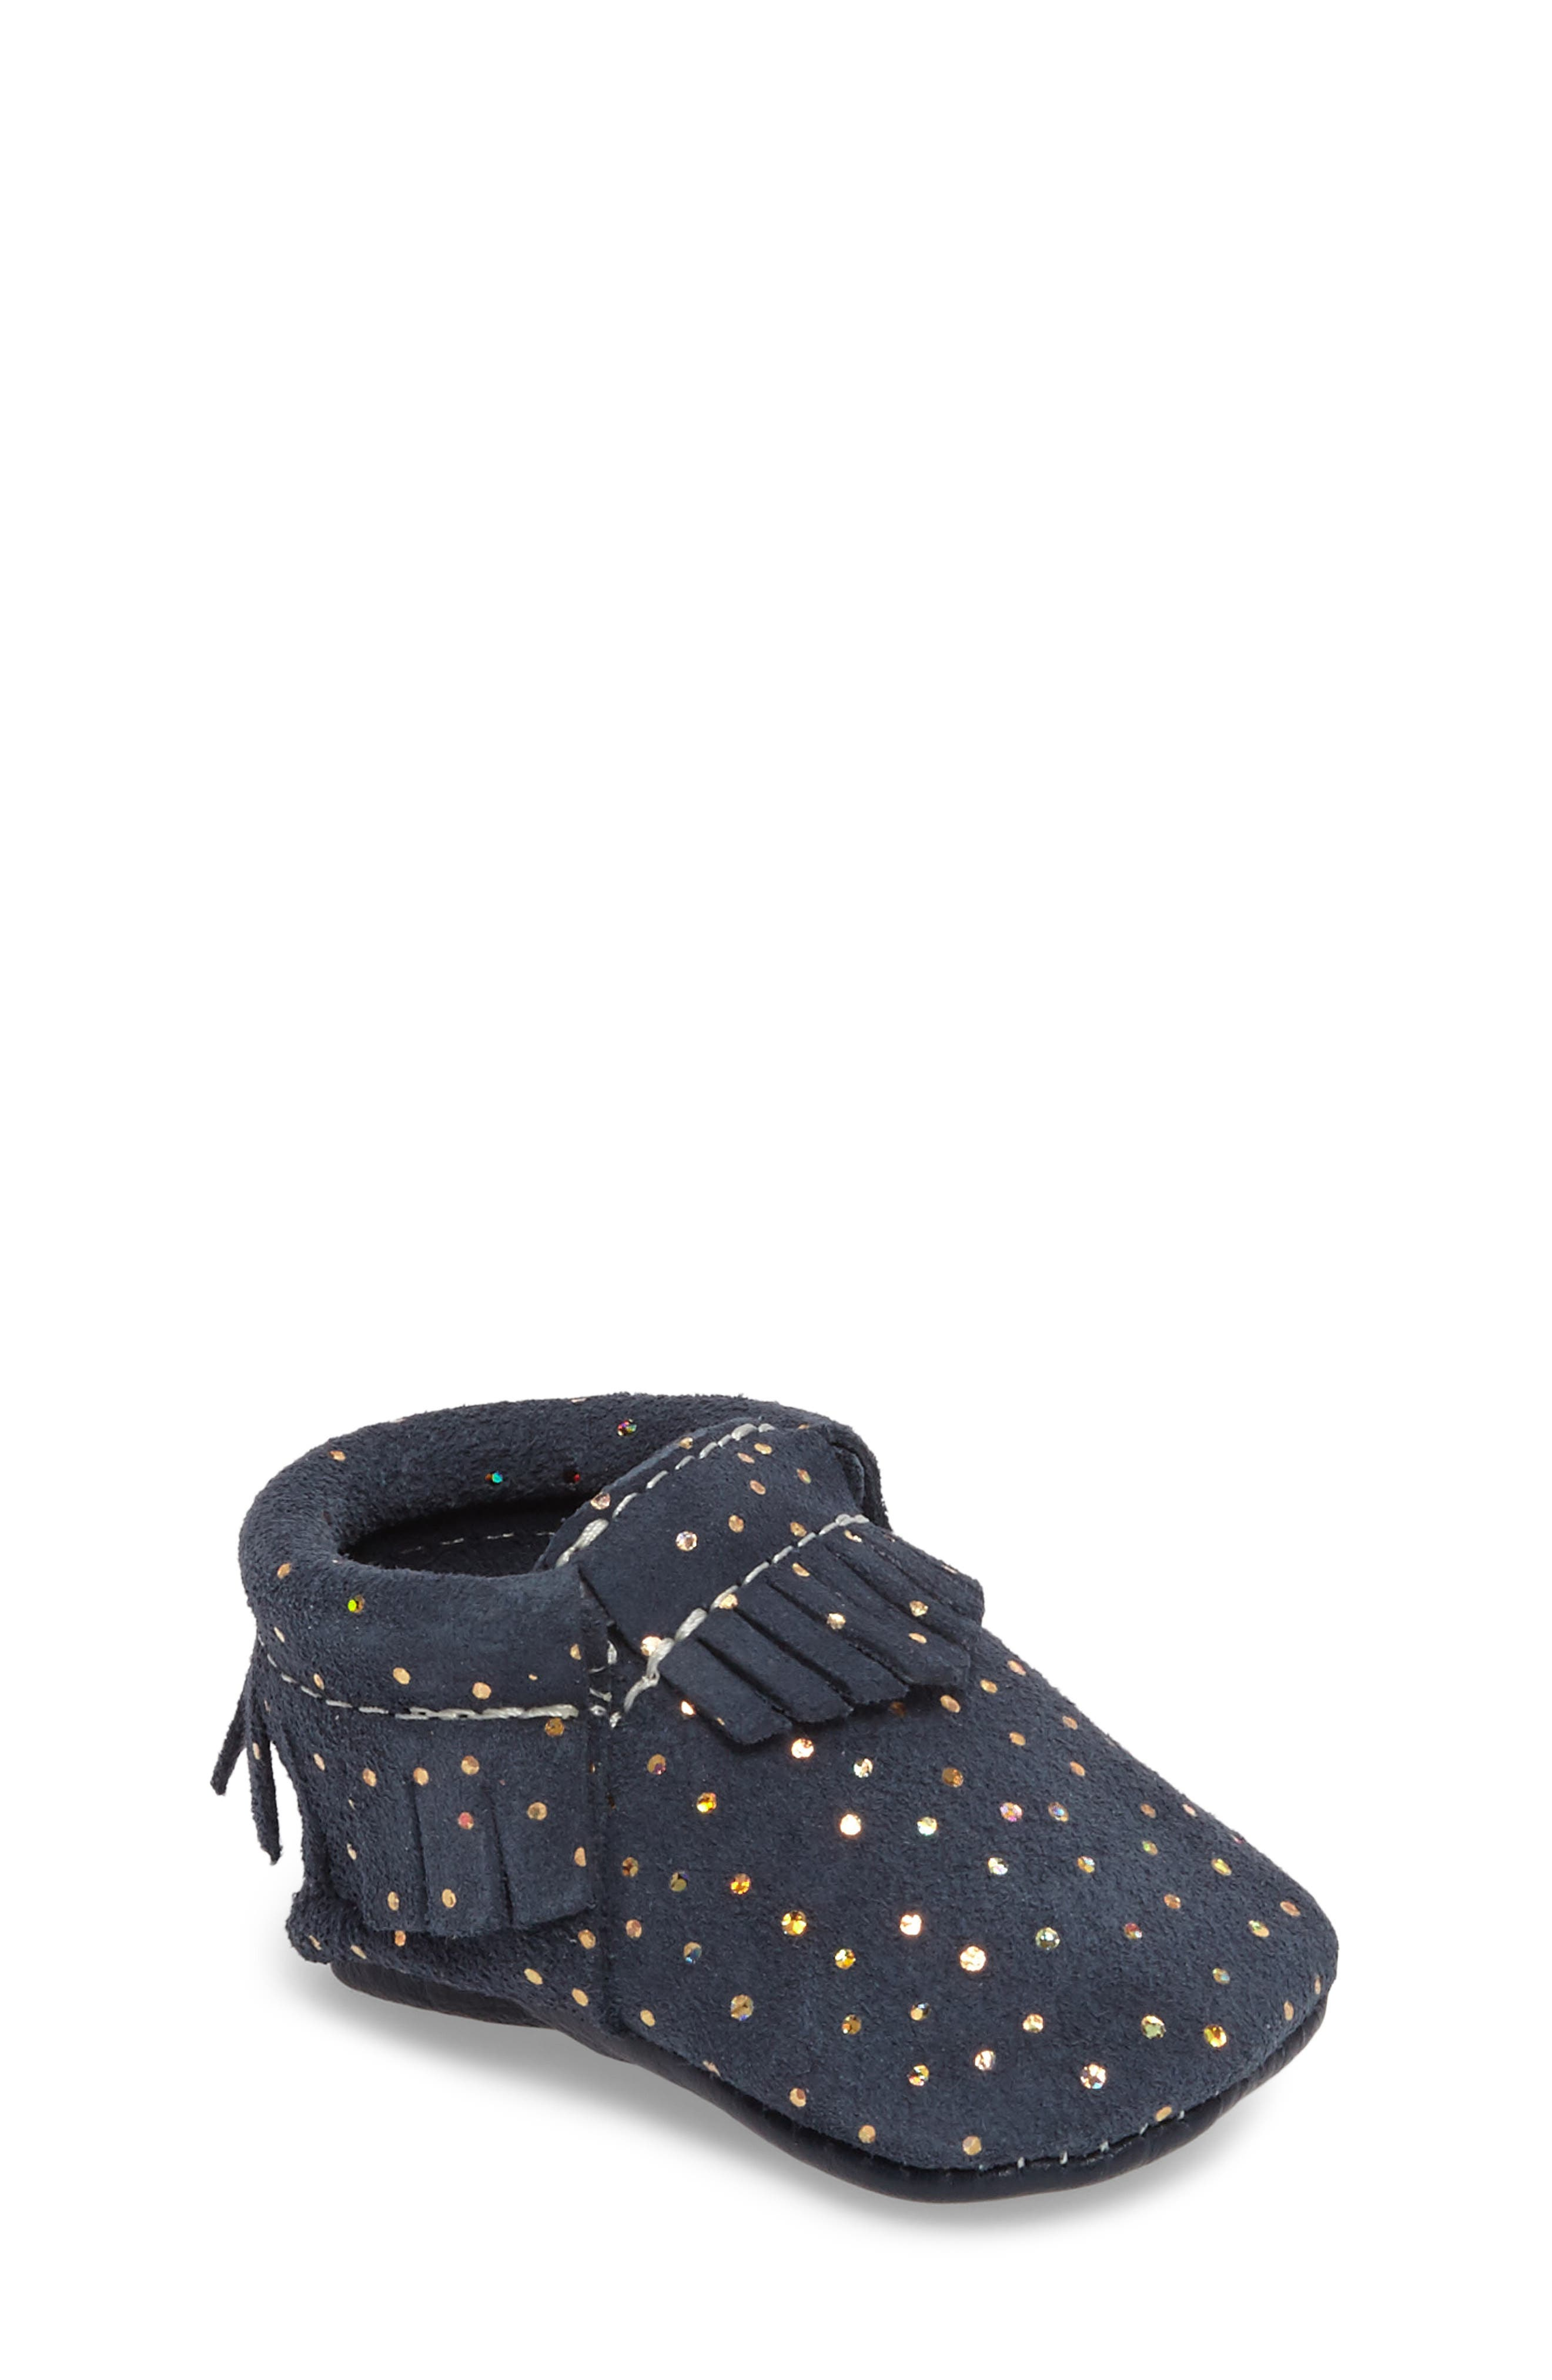 FRESHLY PICKED Confetti Print Moccasin